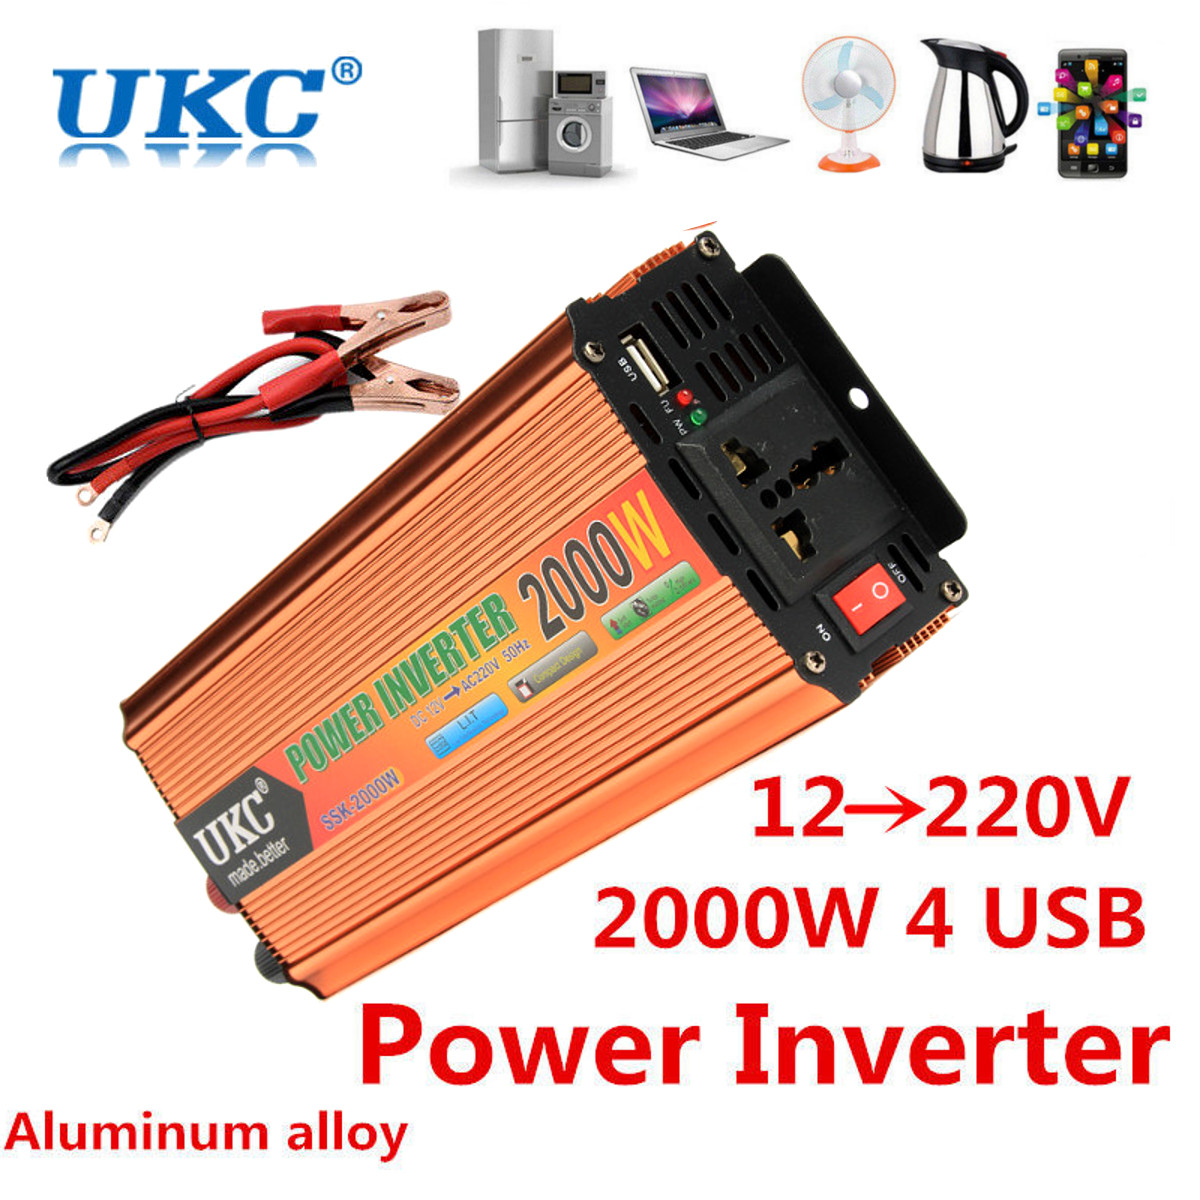 Car Inverter 12V 220V Peak 600/1000/2000/4000W Power Inverter Voltage transformer inverter 12V 220V Power Supply Switch